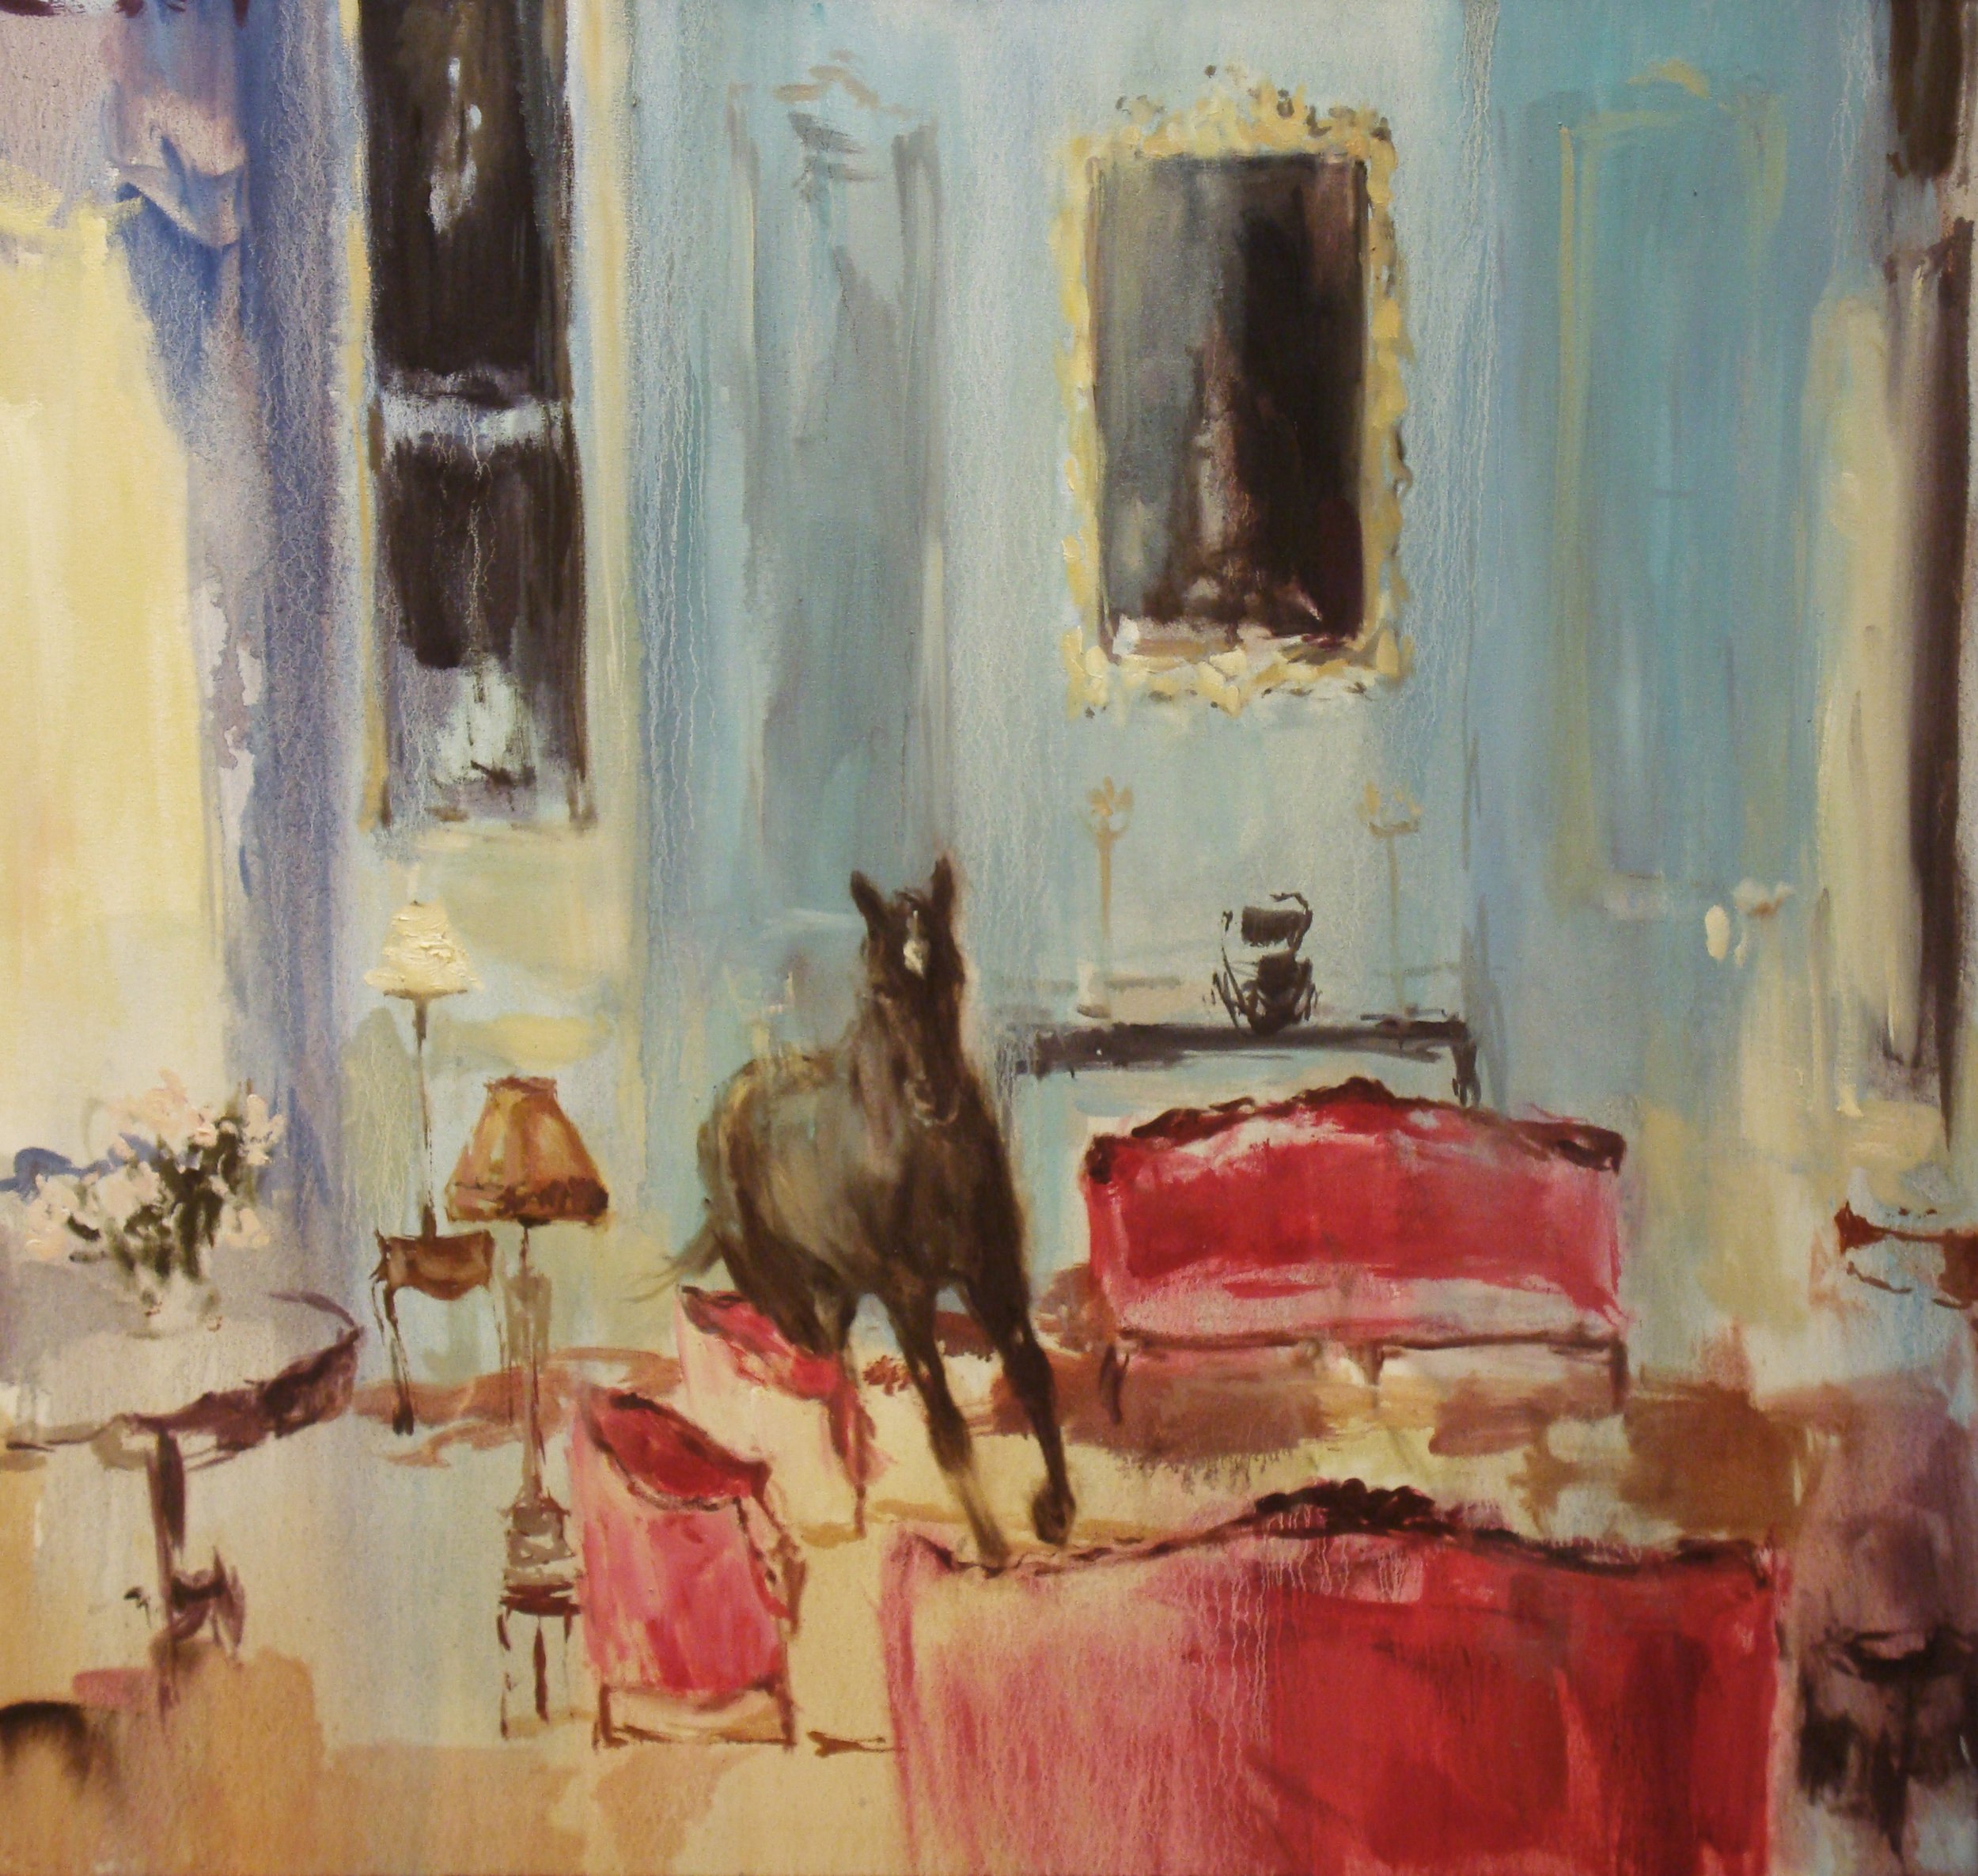 Vintage Suite (heart's on fire) 34 x 36 in. oil on canvas 2011